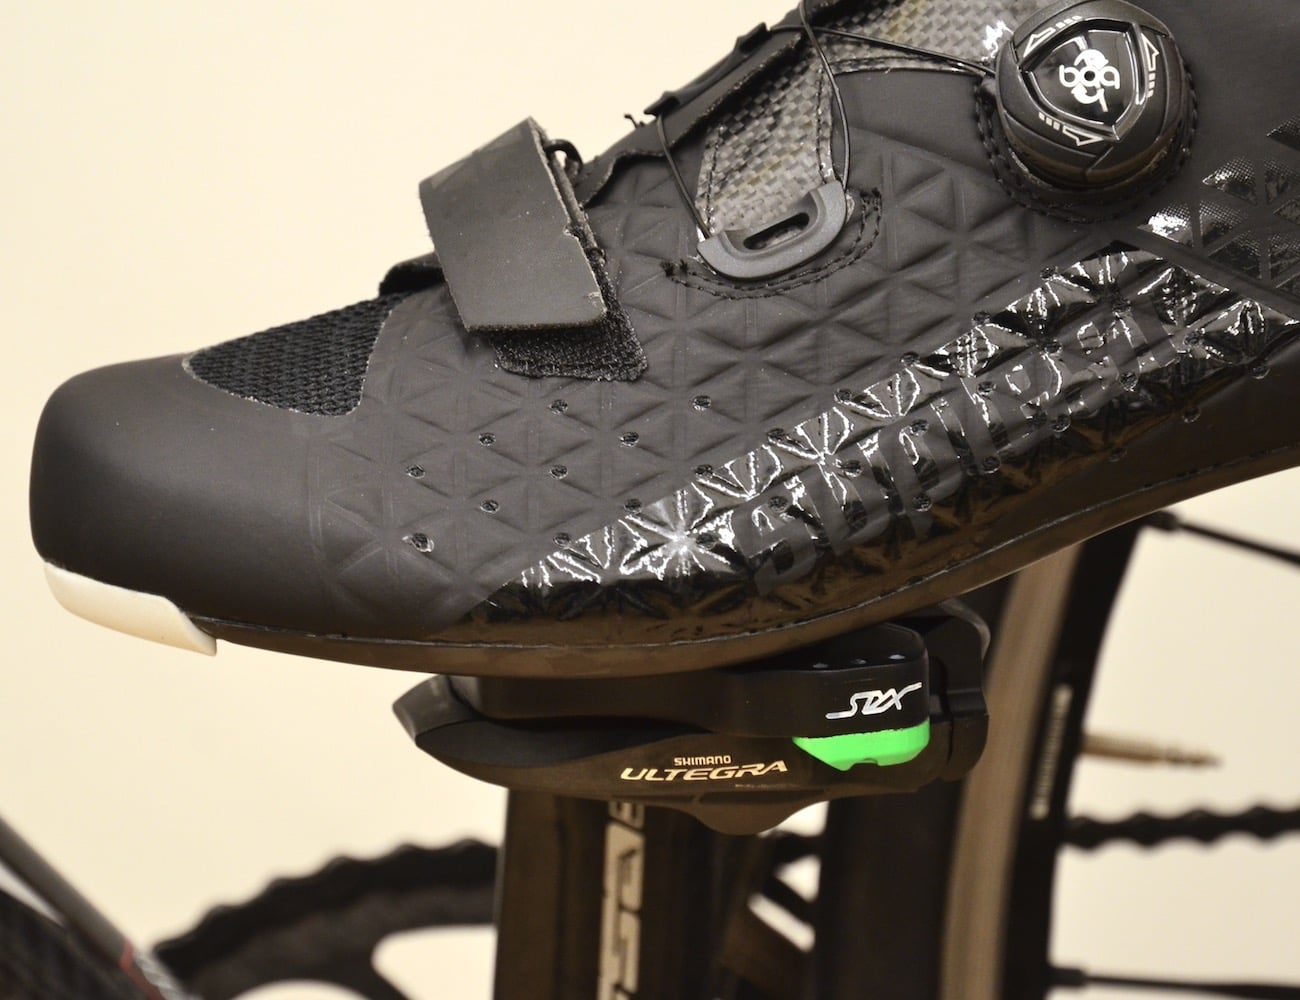 STYX+Wearable+Cycling+Powermeter